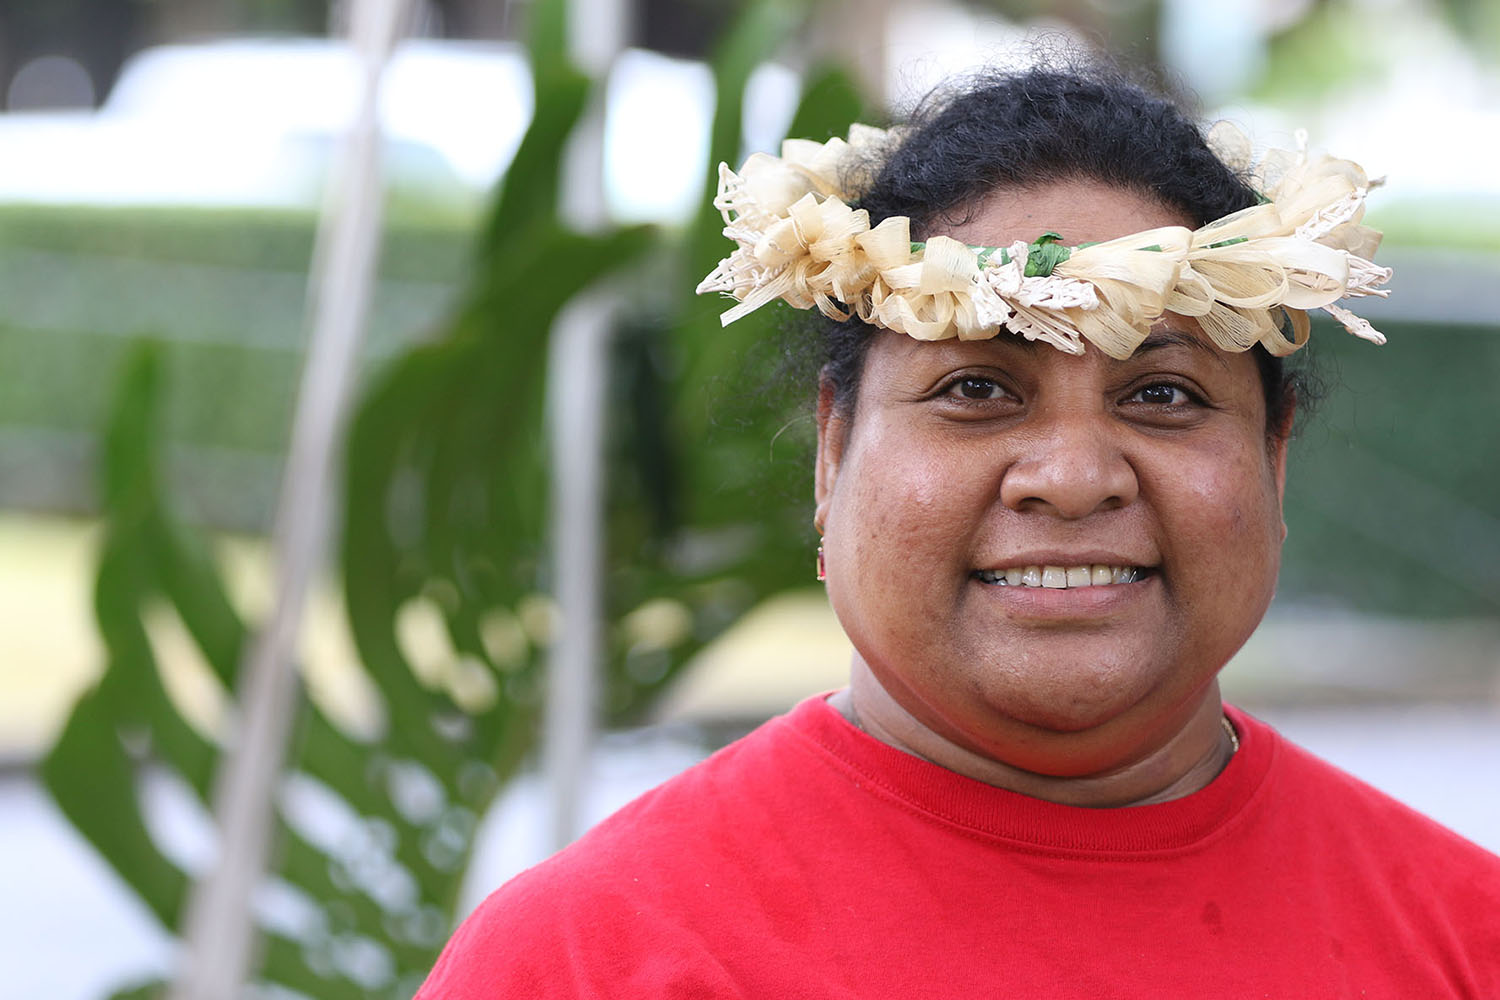 <p>Alice Ehmes leads the Pohnpei Women's Association of Hawaii in Honolulu. Photo by Cory Lum.</p>